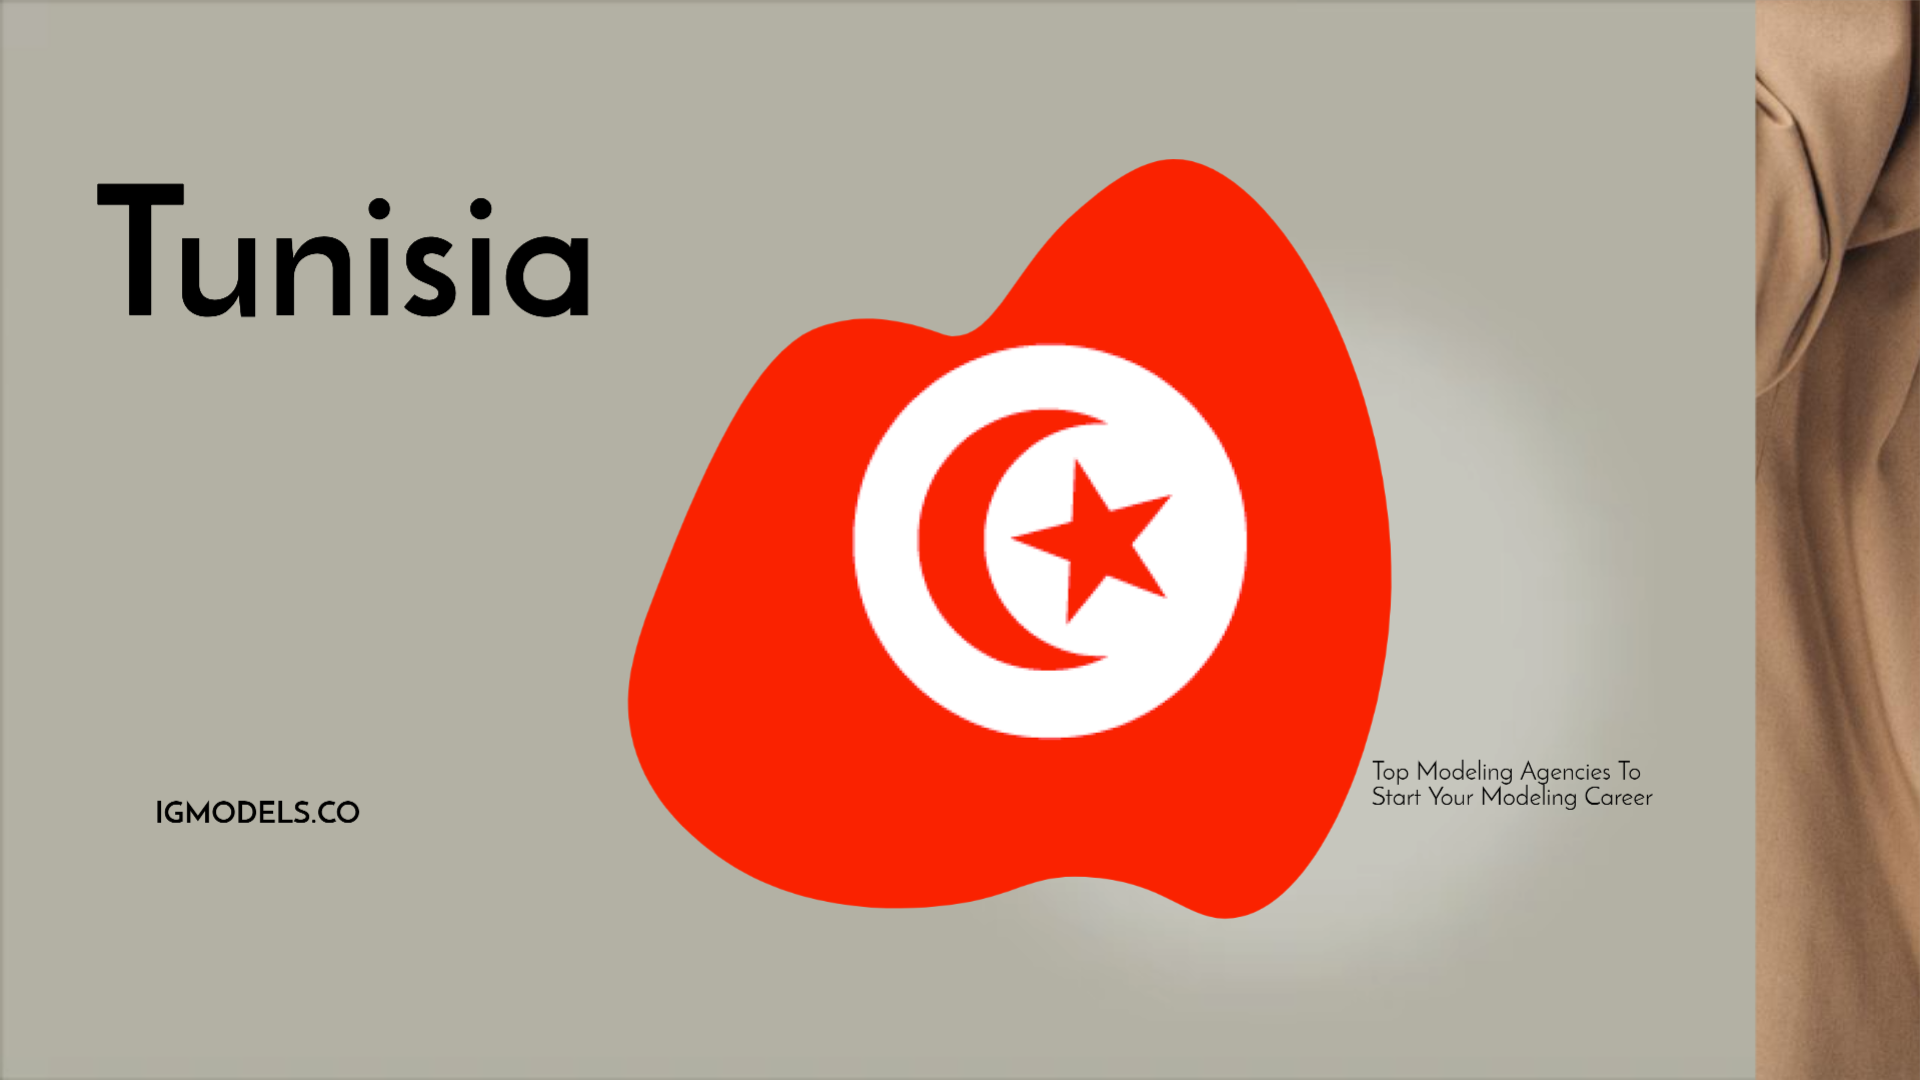 List : Top 35 Modeling Agencies In Tunisia To Start Your Modeling Career In 2021